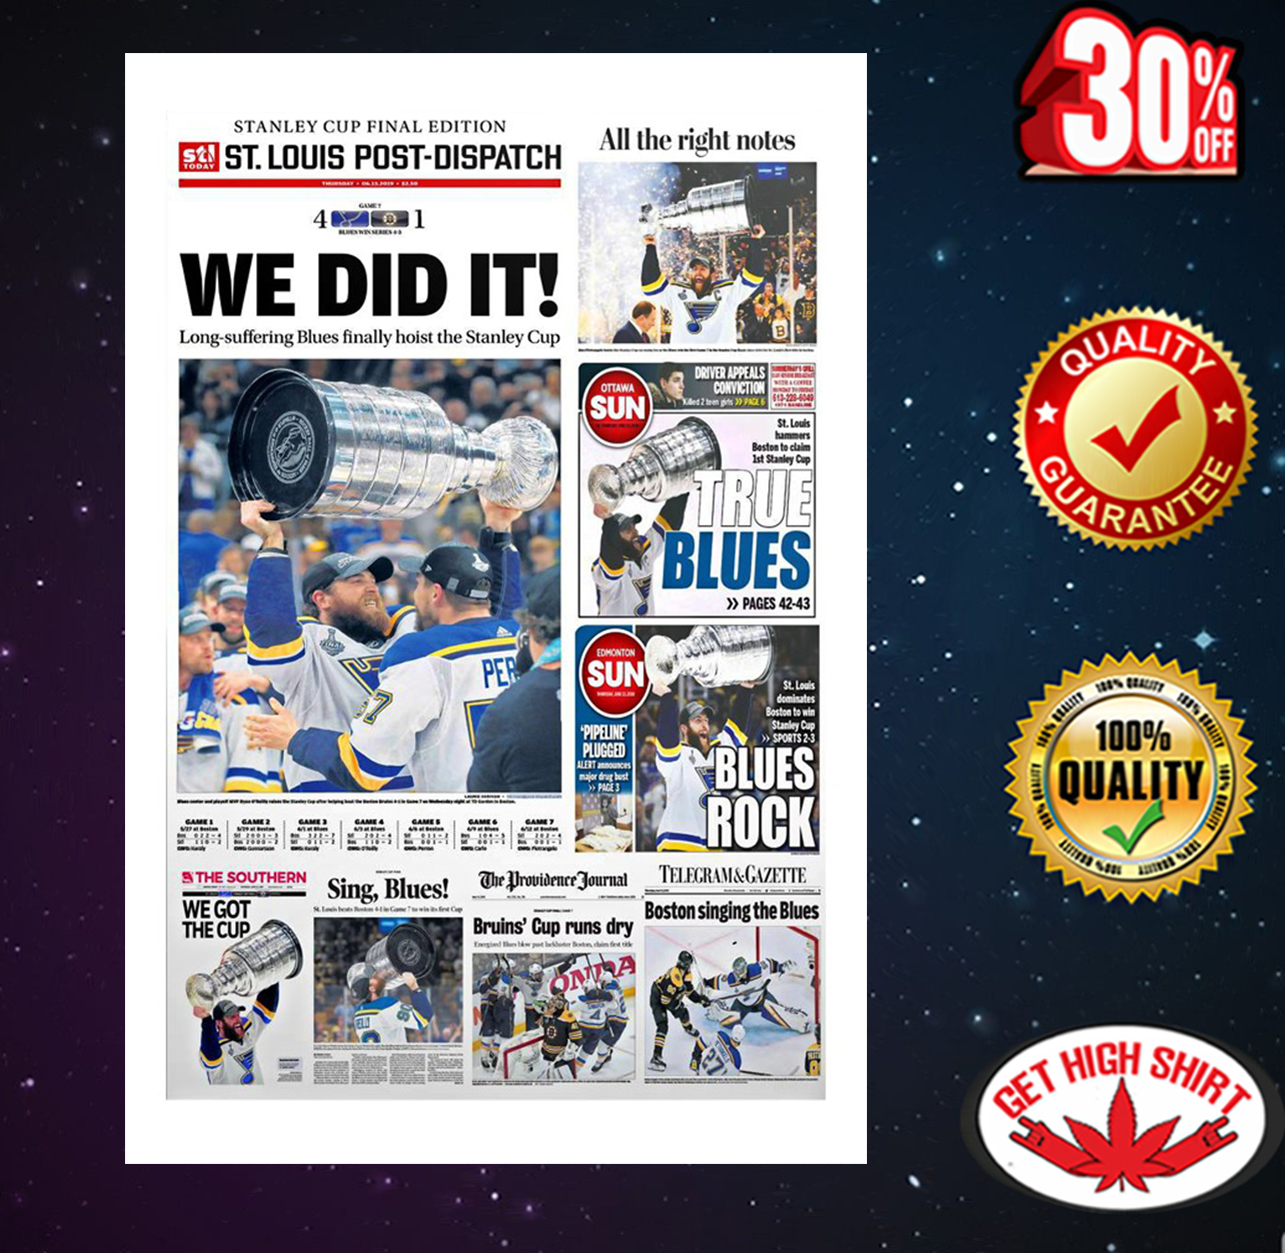 We did it Stanley Cup Final Edition St. Louis Post-Dispatch poster 11x17